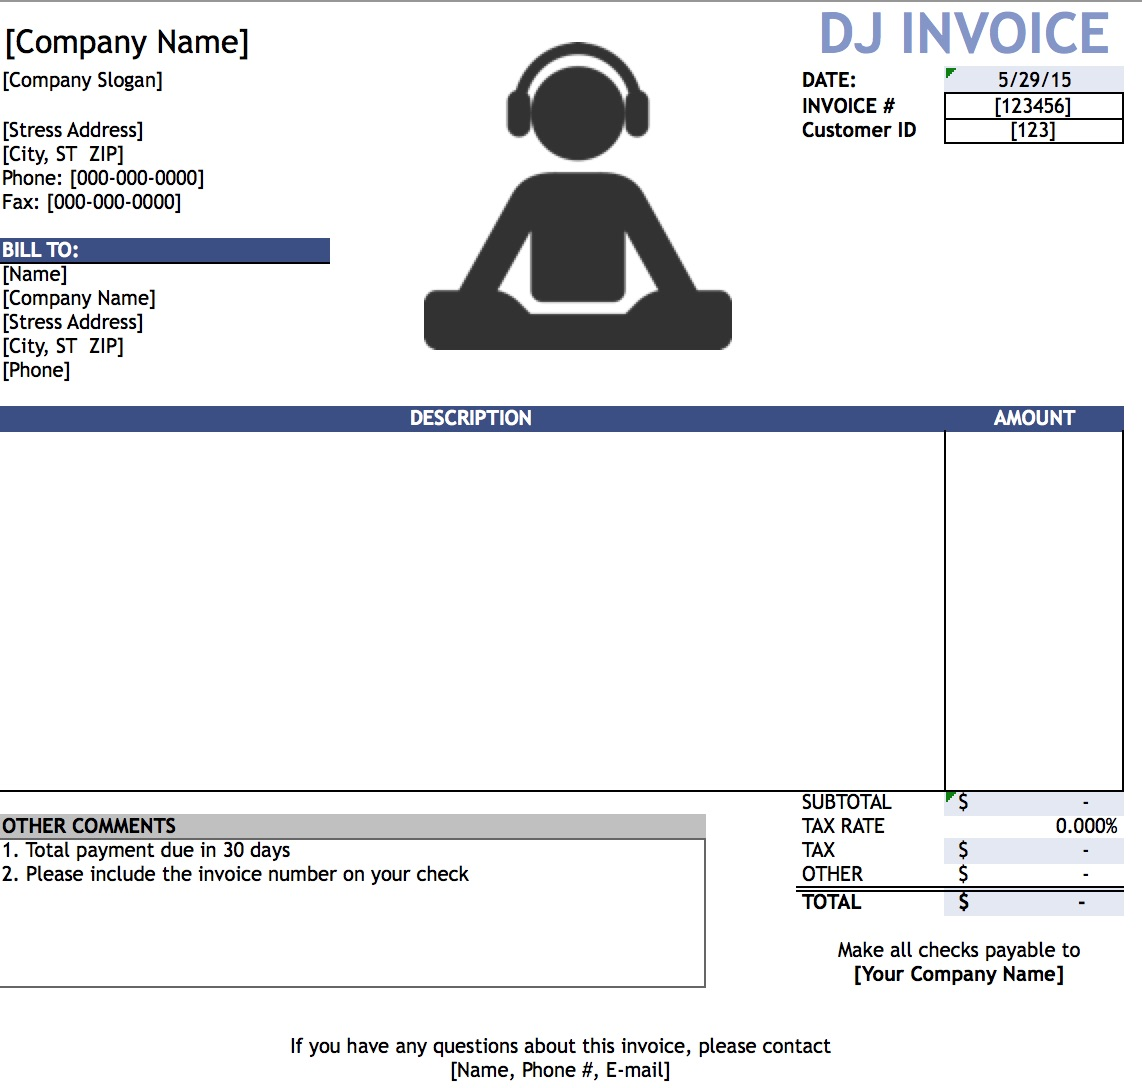 Free DJ Disc Jockey Invoice Template Excel PDF Word Doc - Company invoice template excel for service business